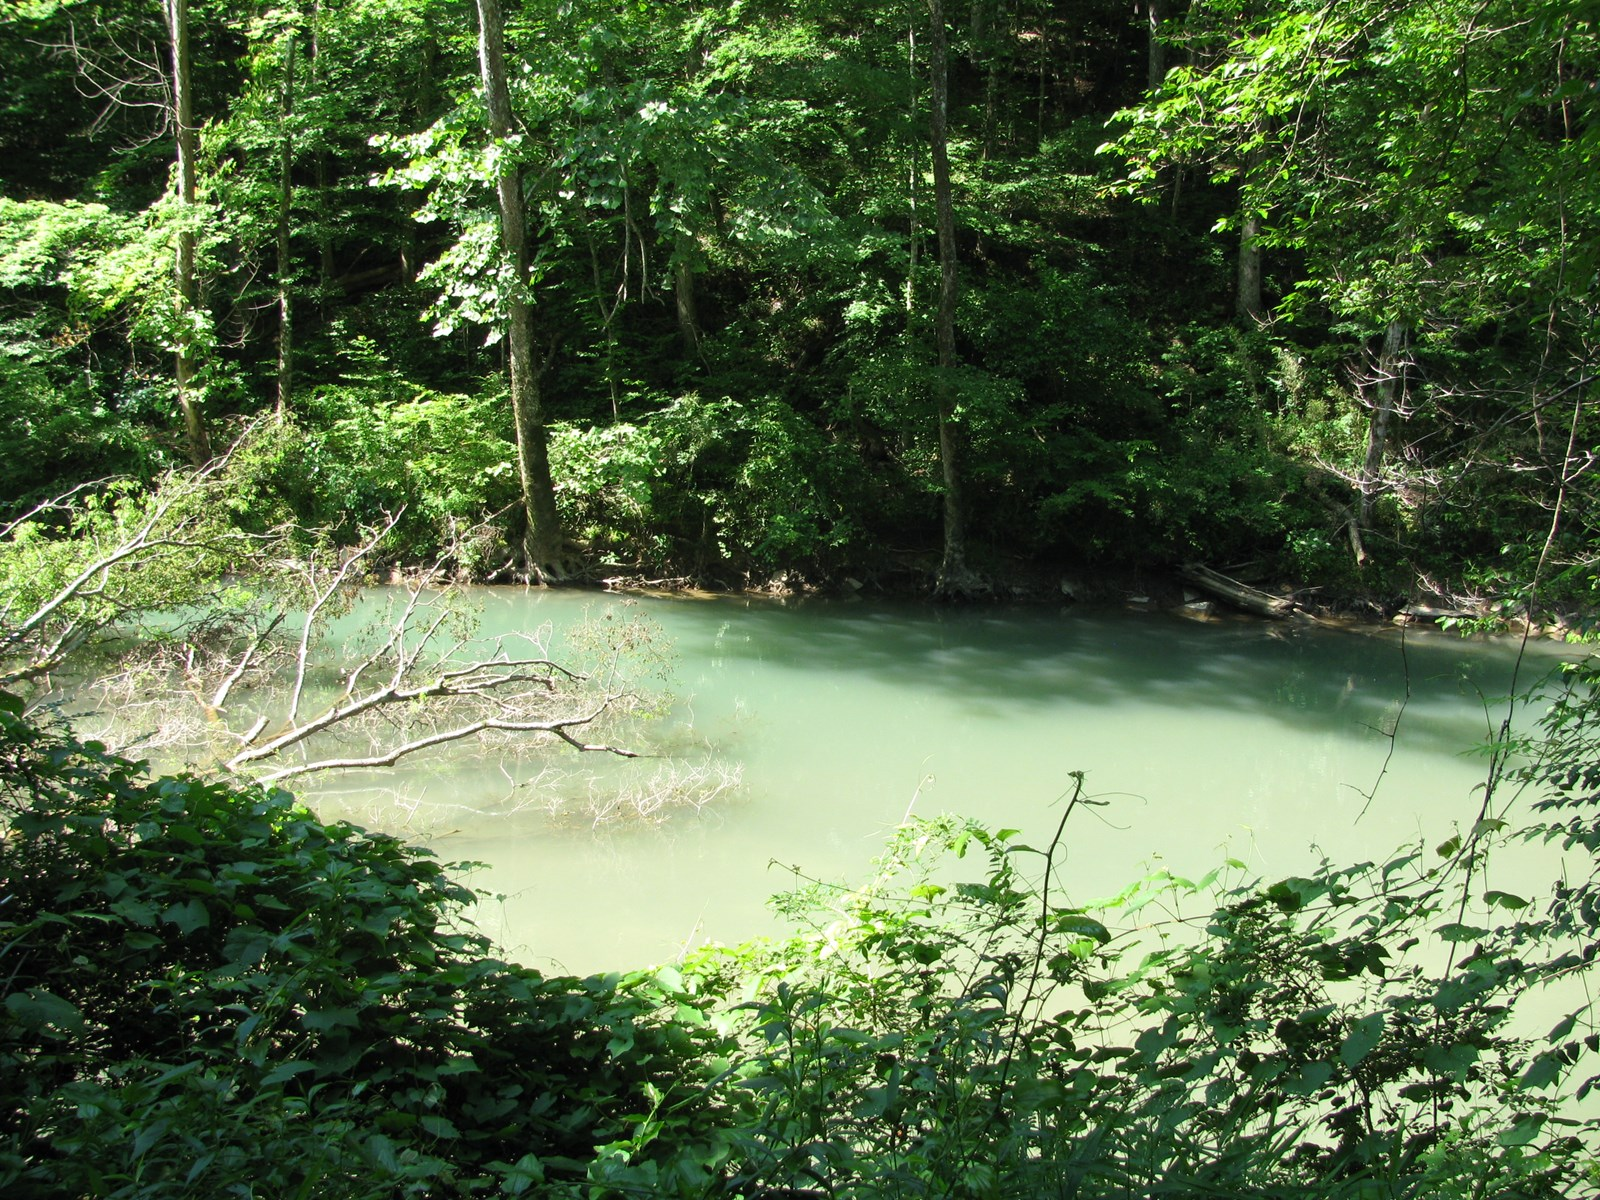 CREEK FRONT LOT FOR SALE ON INDIAN CREEK IN SAVANNAH, TN